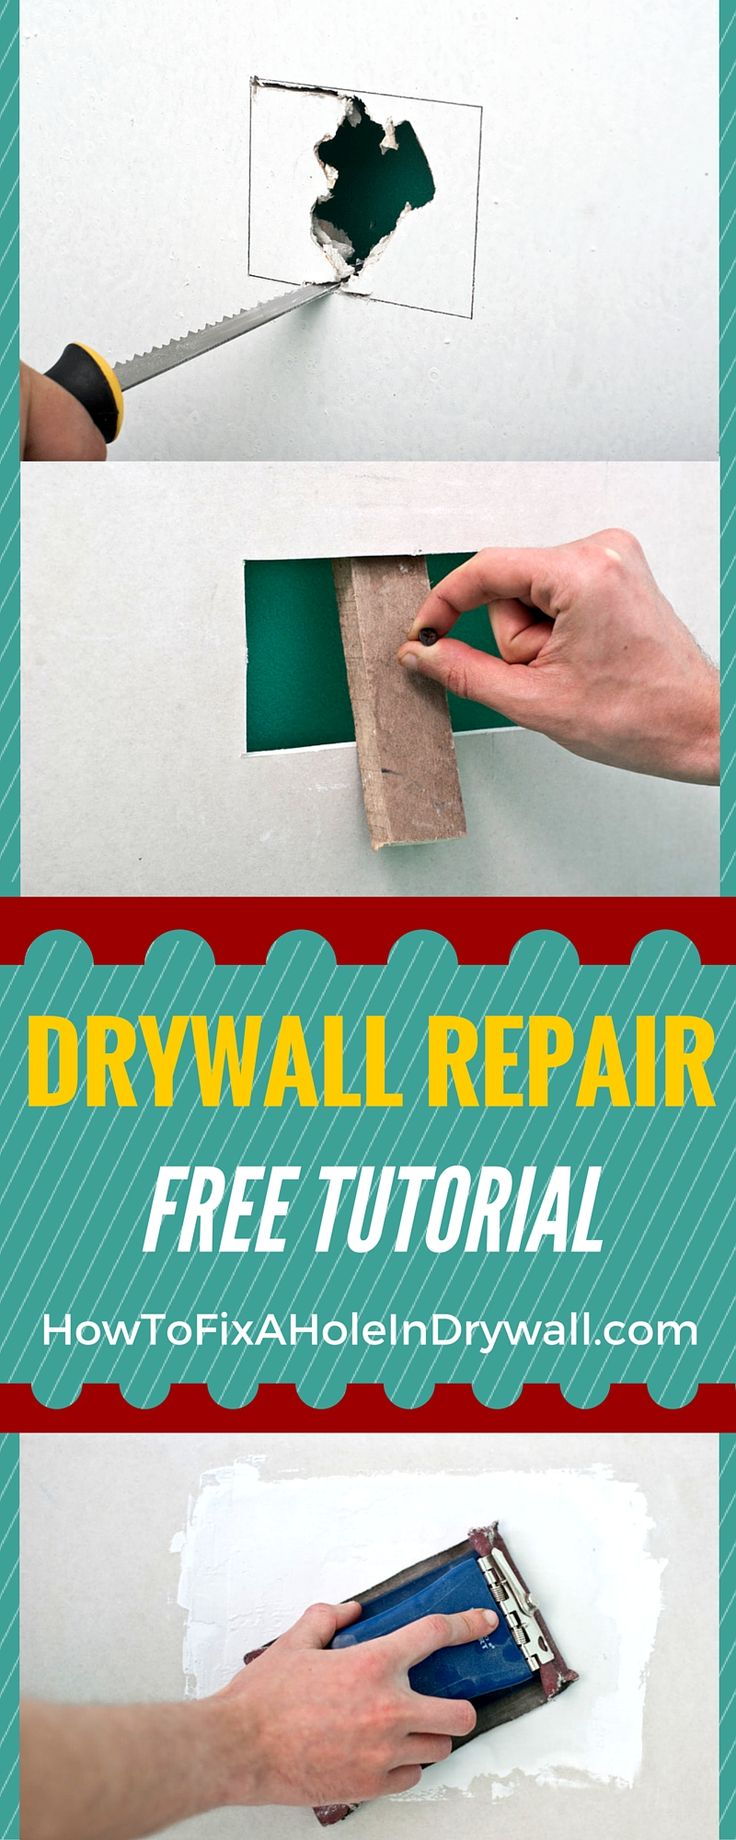 How To Fix A Hole In Drywall  Easy To Follow Instructions And Tips For You